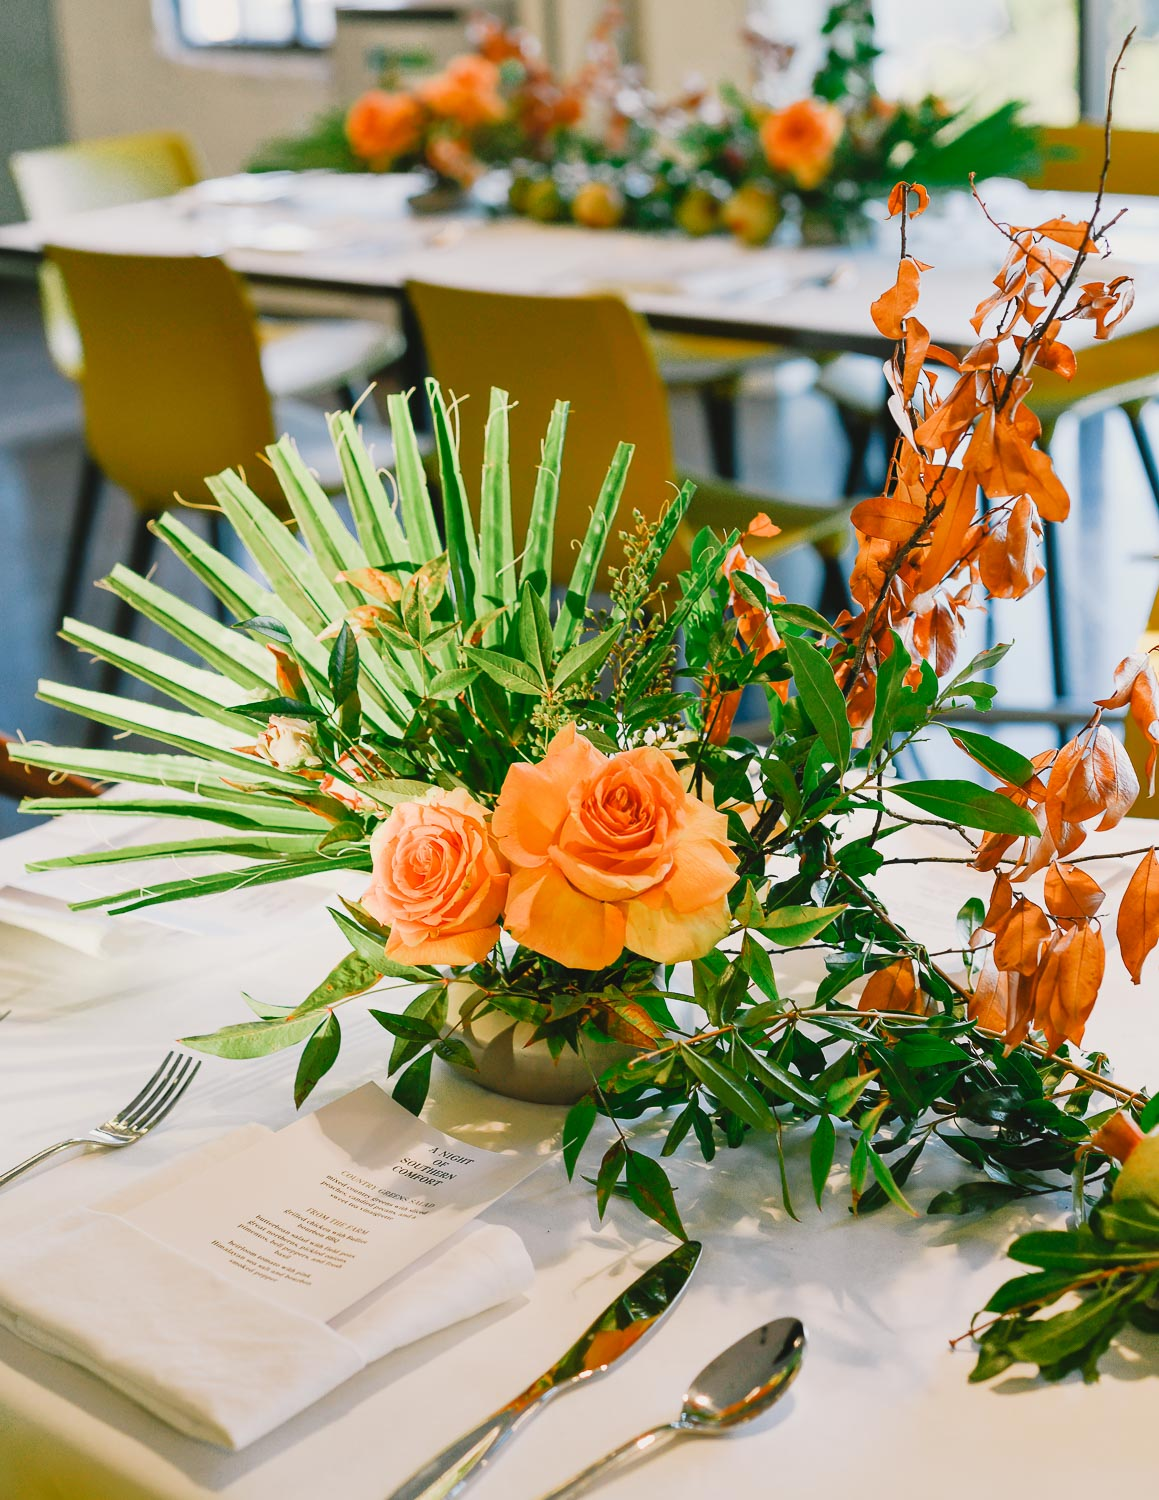 FLORALS FROM  FLORALOOM  FOR A NON-PROFIT GATHERING AT  CARUSO